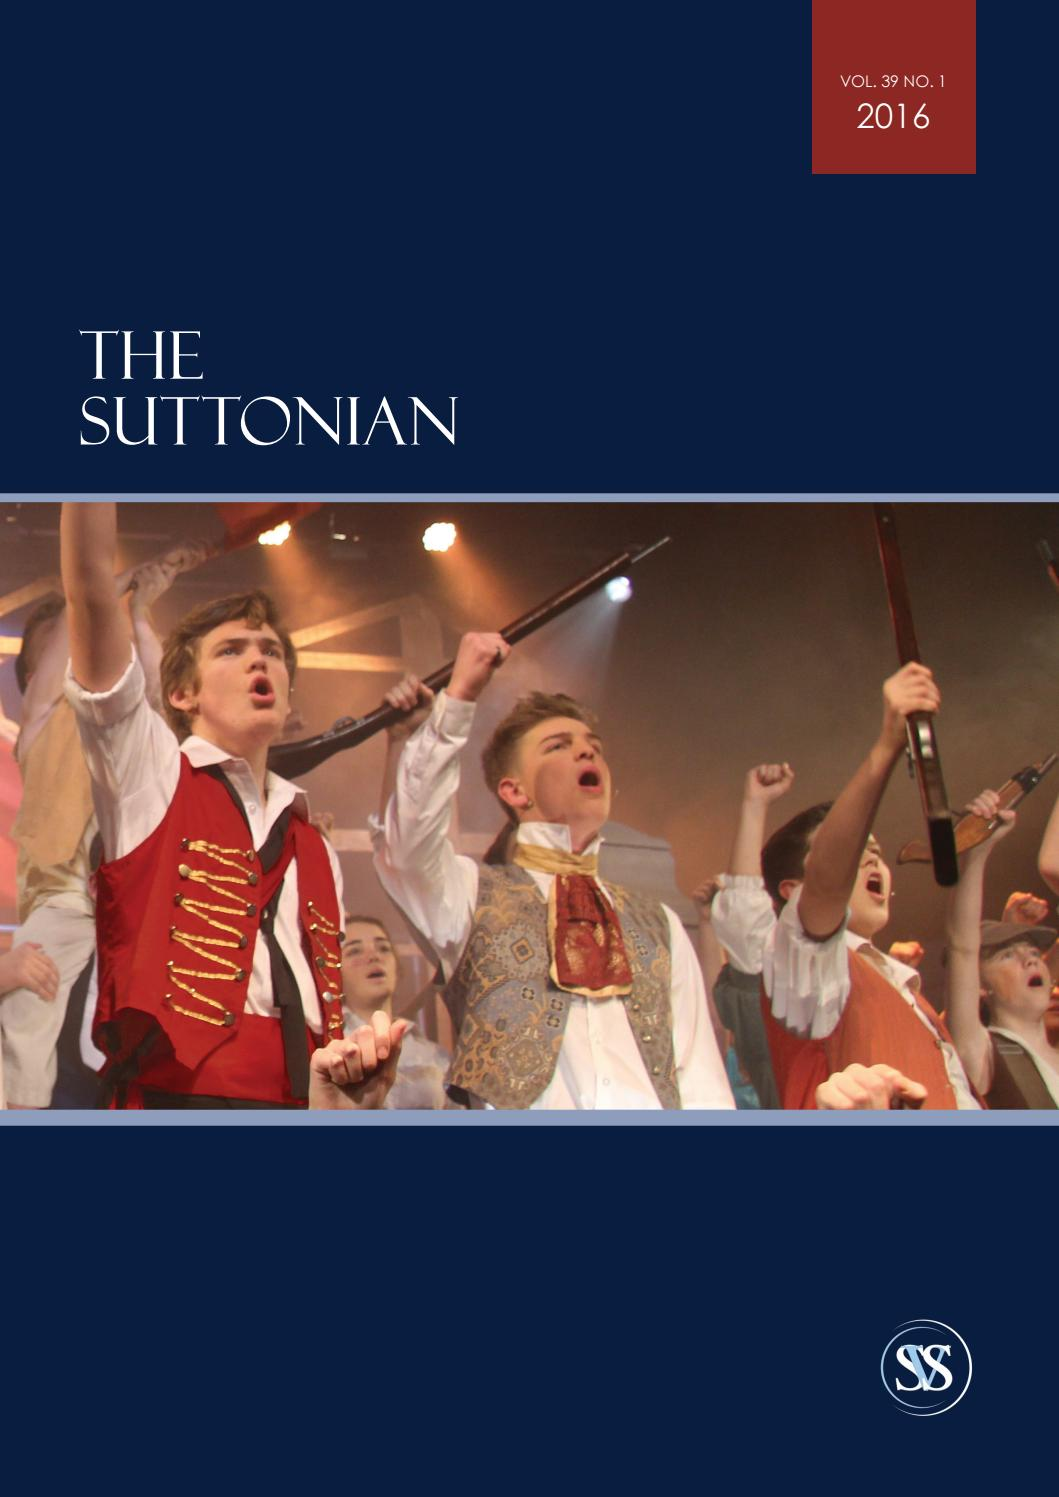 The Suttonian 2016 by Sutton Valence School - issuu 05be9ee55